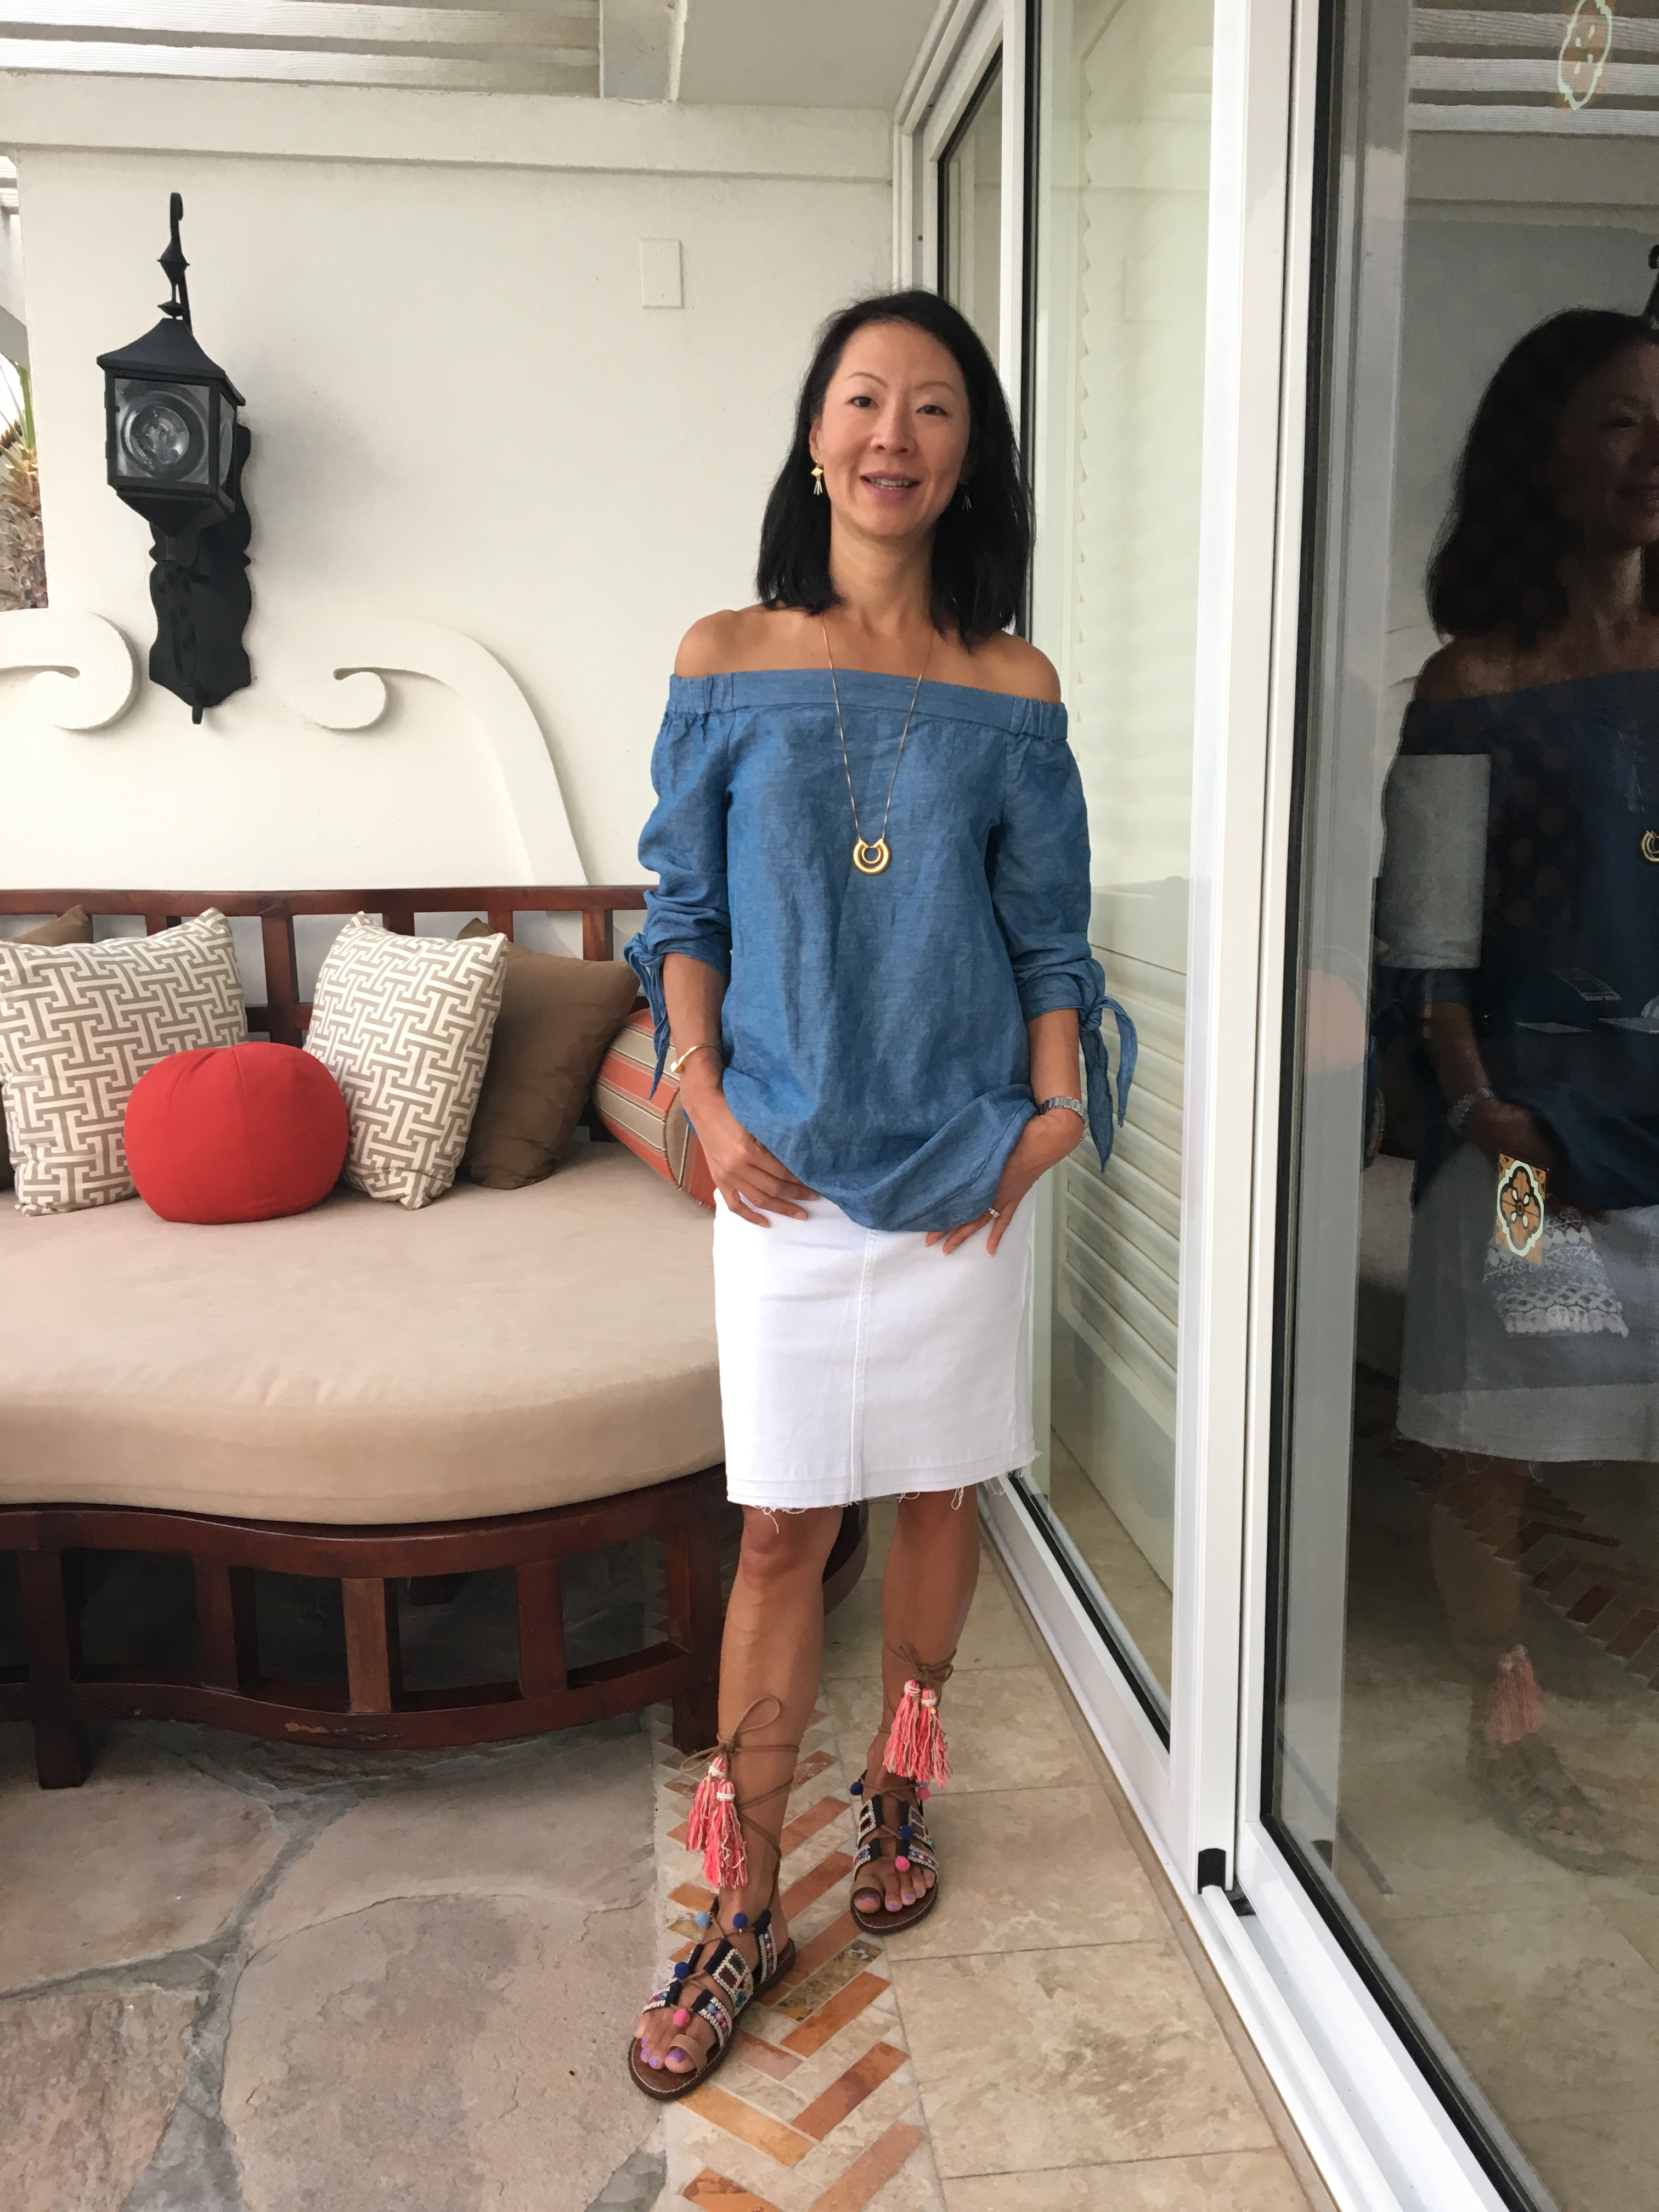 e5f111b8ece61 Free People off-the-shoulder top in chambray  J.Crew frayed white denim  skirt  Sam Edelman Gretchen sandals in golden caramel  Madewell circle  pendant ...